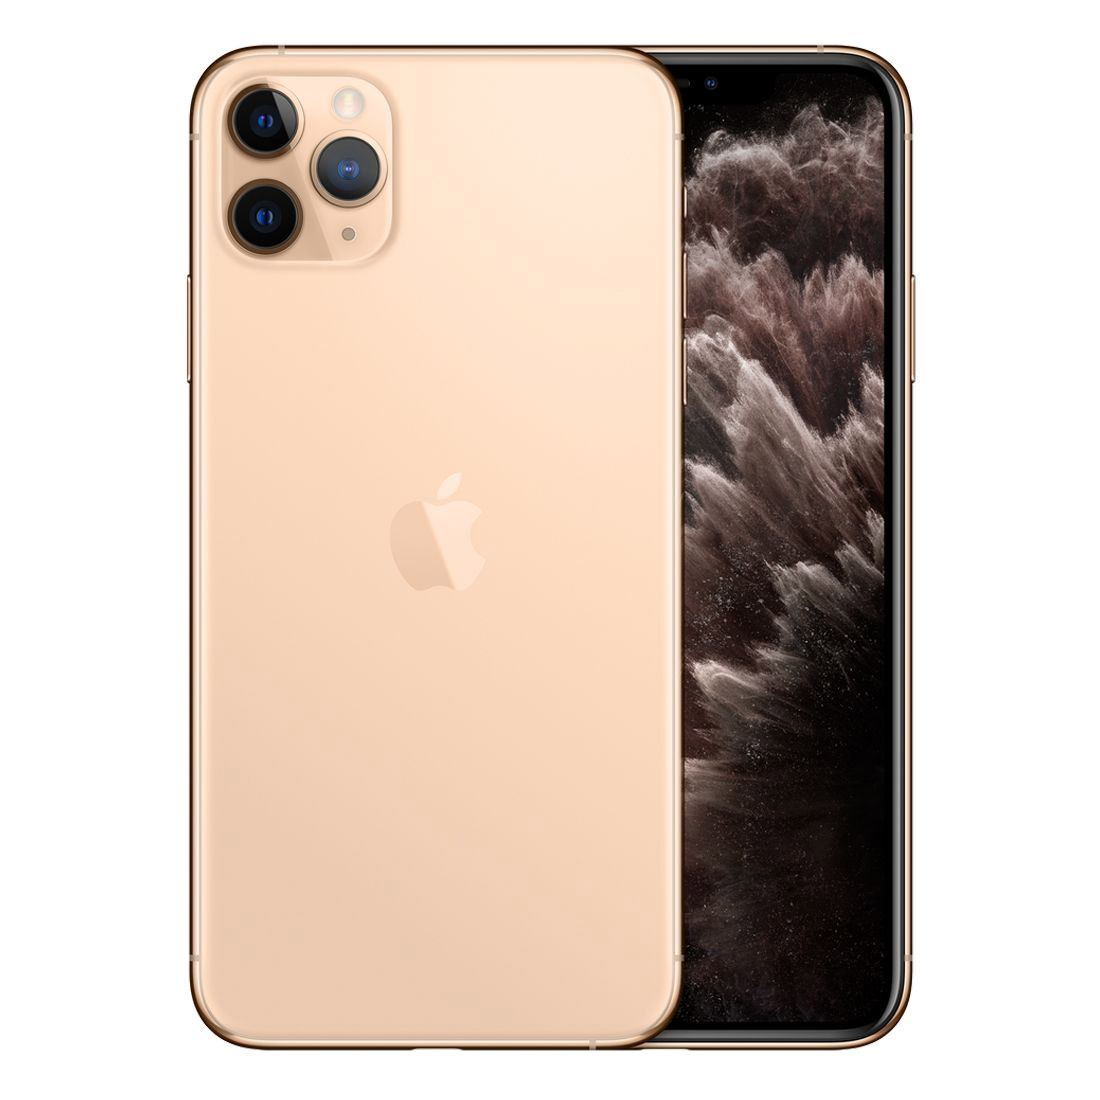 [Open Box - As New] Apple iPhone 11 Pro Max 512GB - Gold